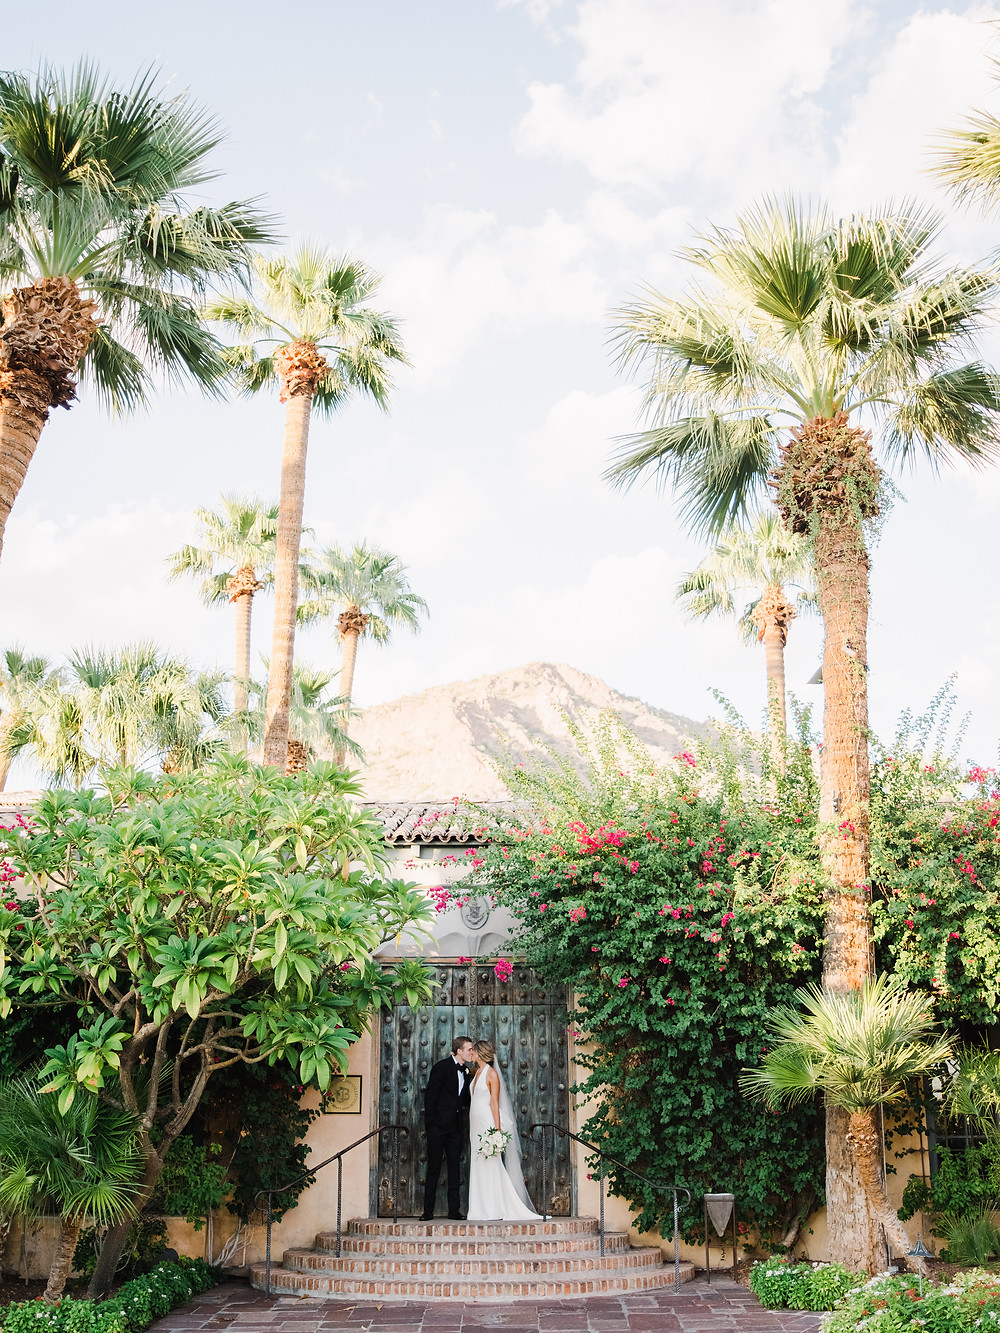 Royal Palms Wedding | Scottsdale, AZ | Elyse Hall Wedding Photography